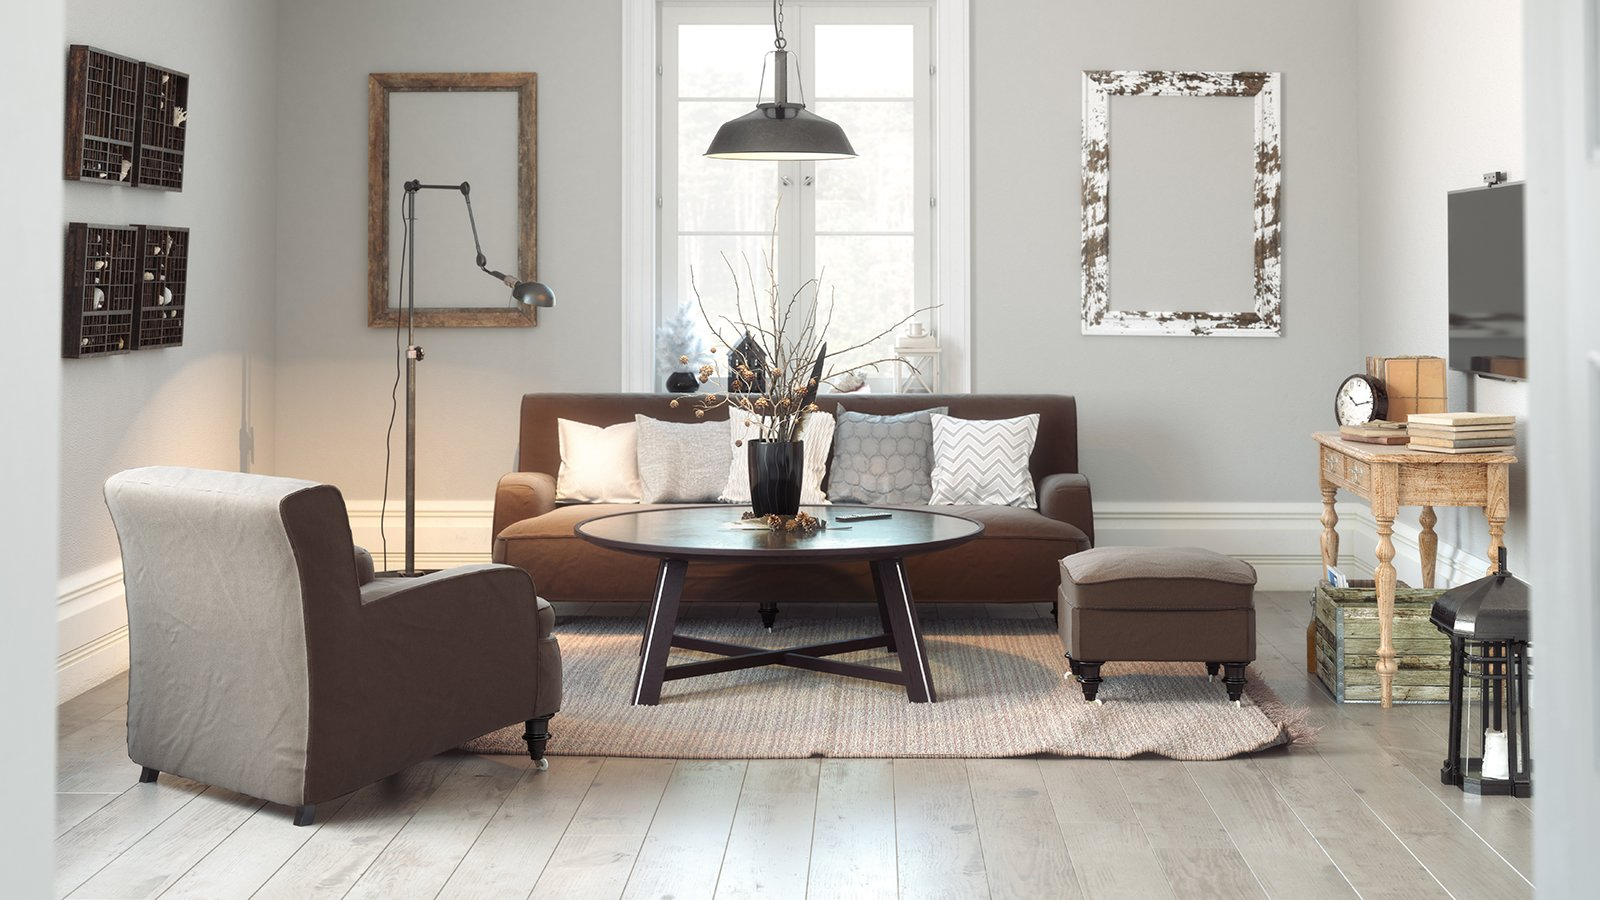 Minimalistic scandinavian living room